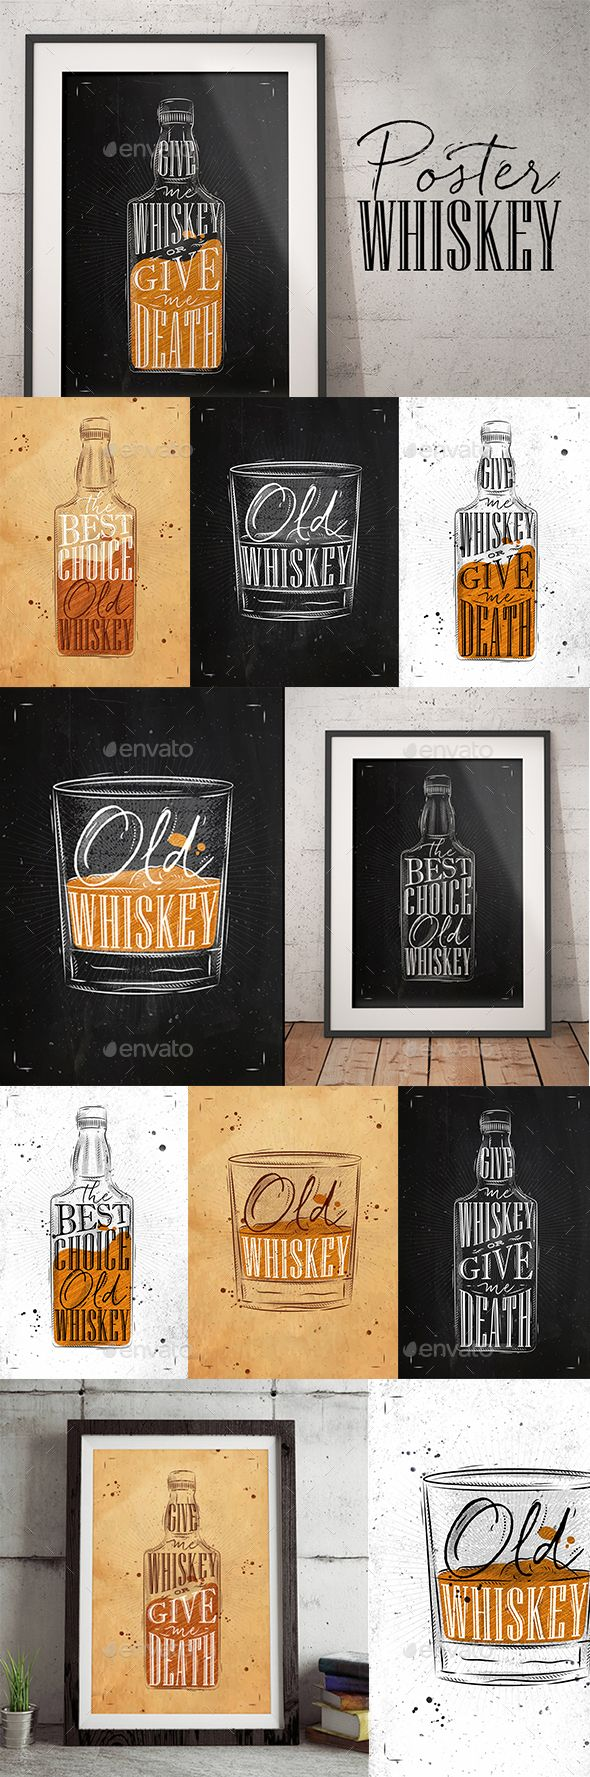 Whiskey Posters - Food #Objects Download here: https://graphicriver.net/item/whiskey-posters/19741360?ref=alena994